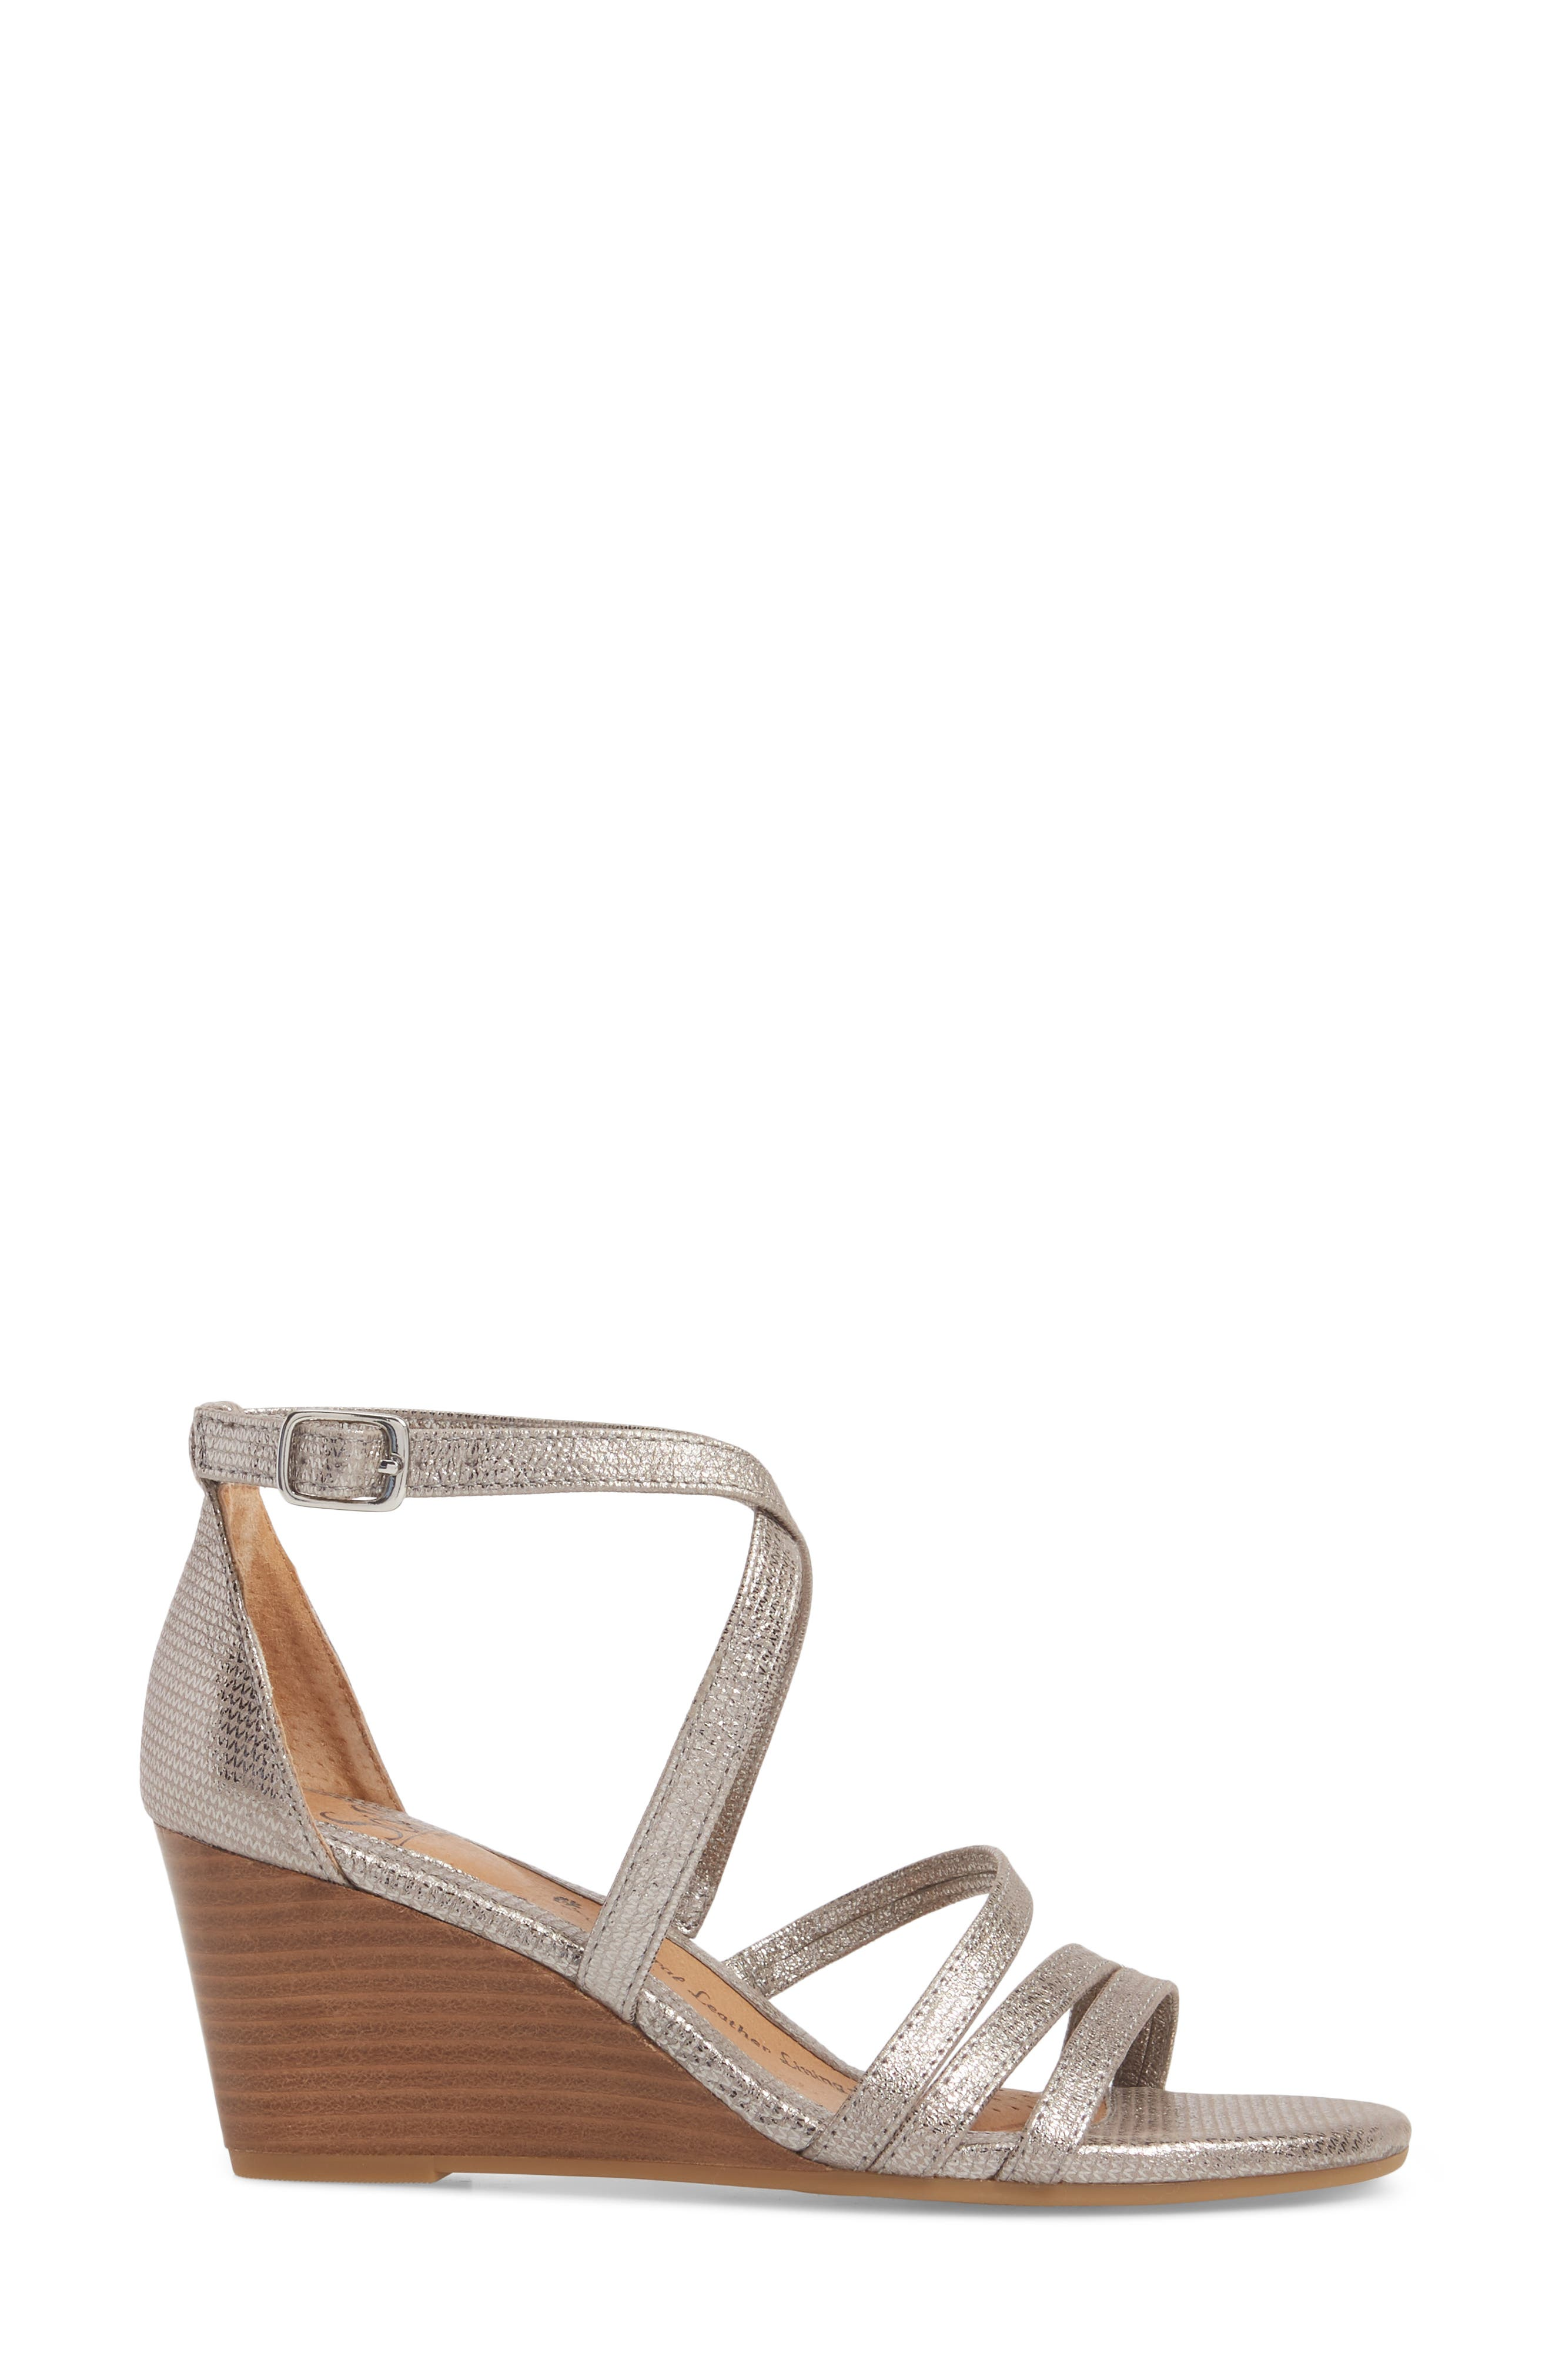 Mecina Wedge Sandal,                             Alternate thumbnail 3, color,                             SILVER METALLIC LEATHER